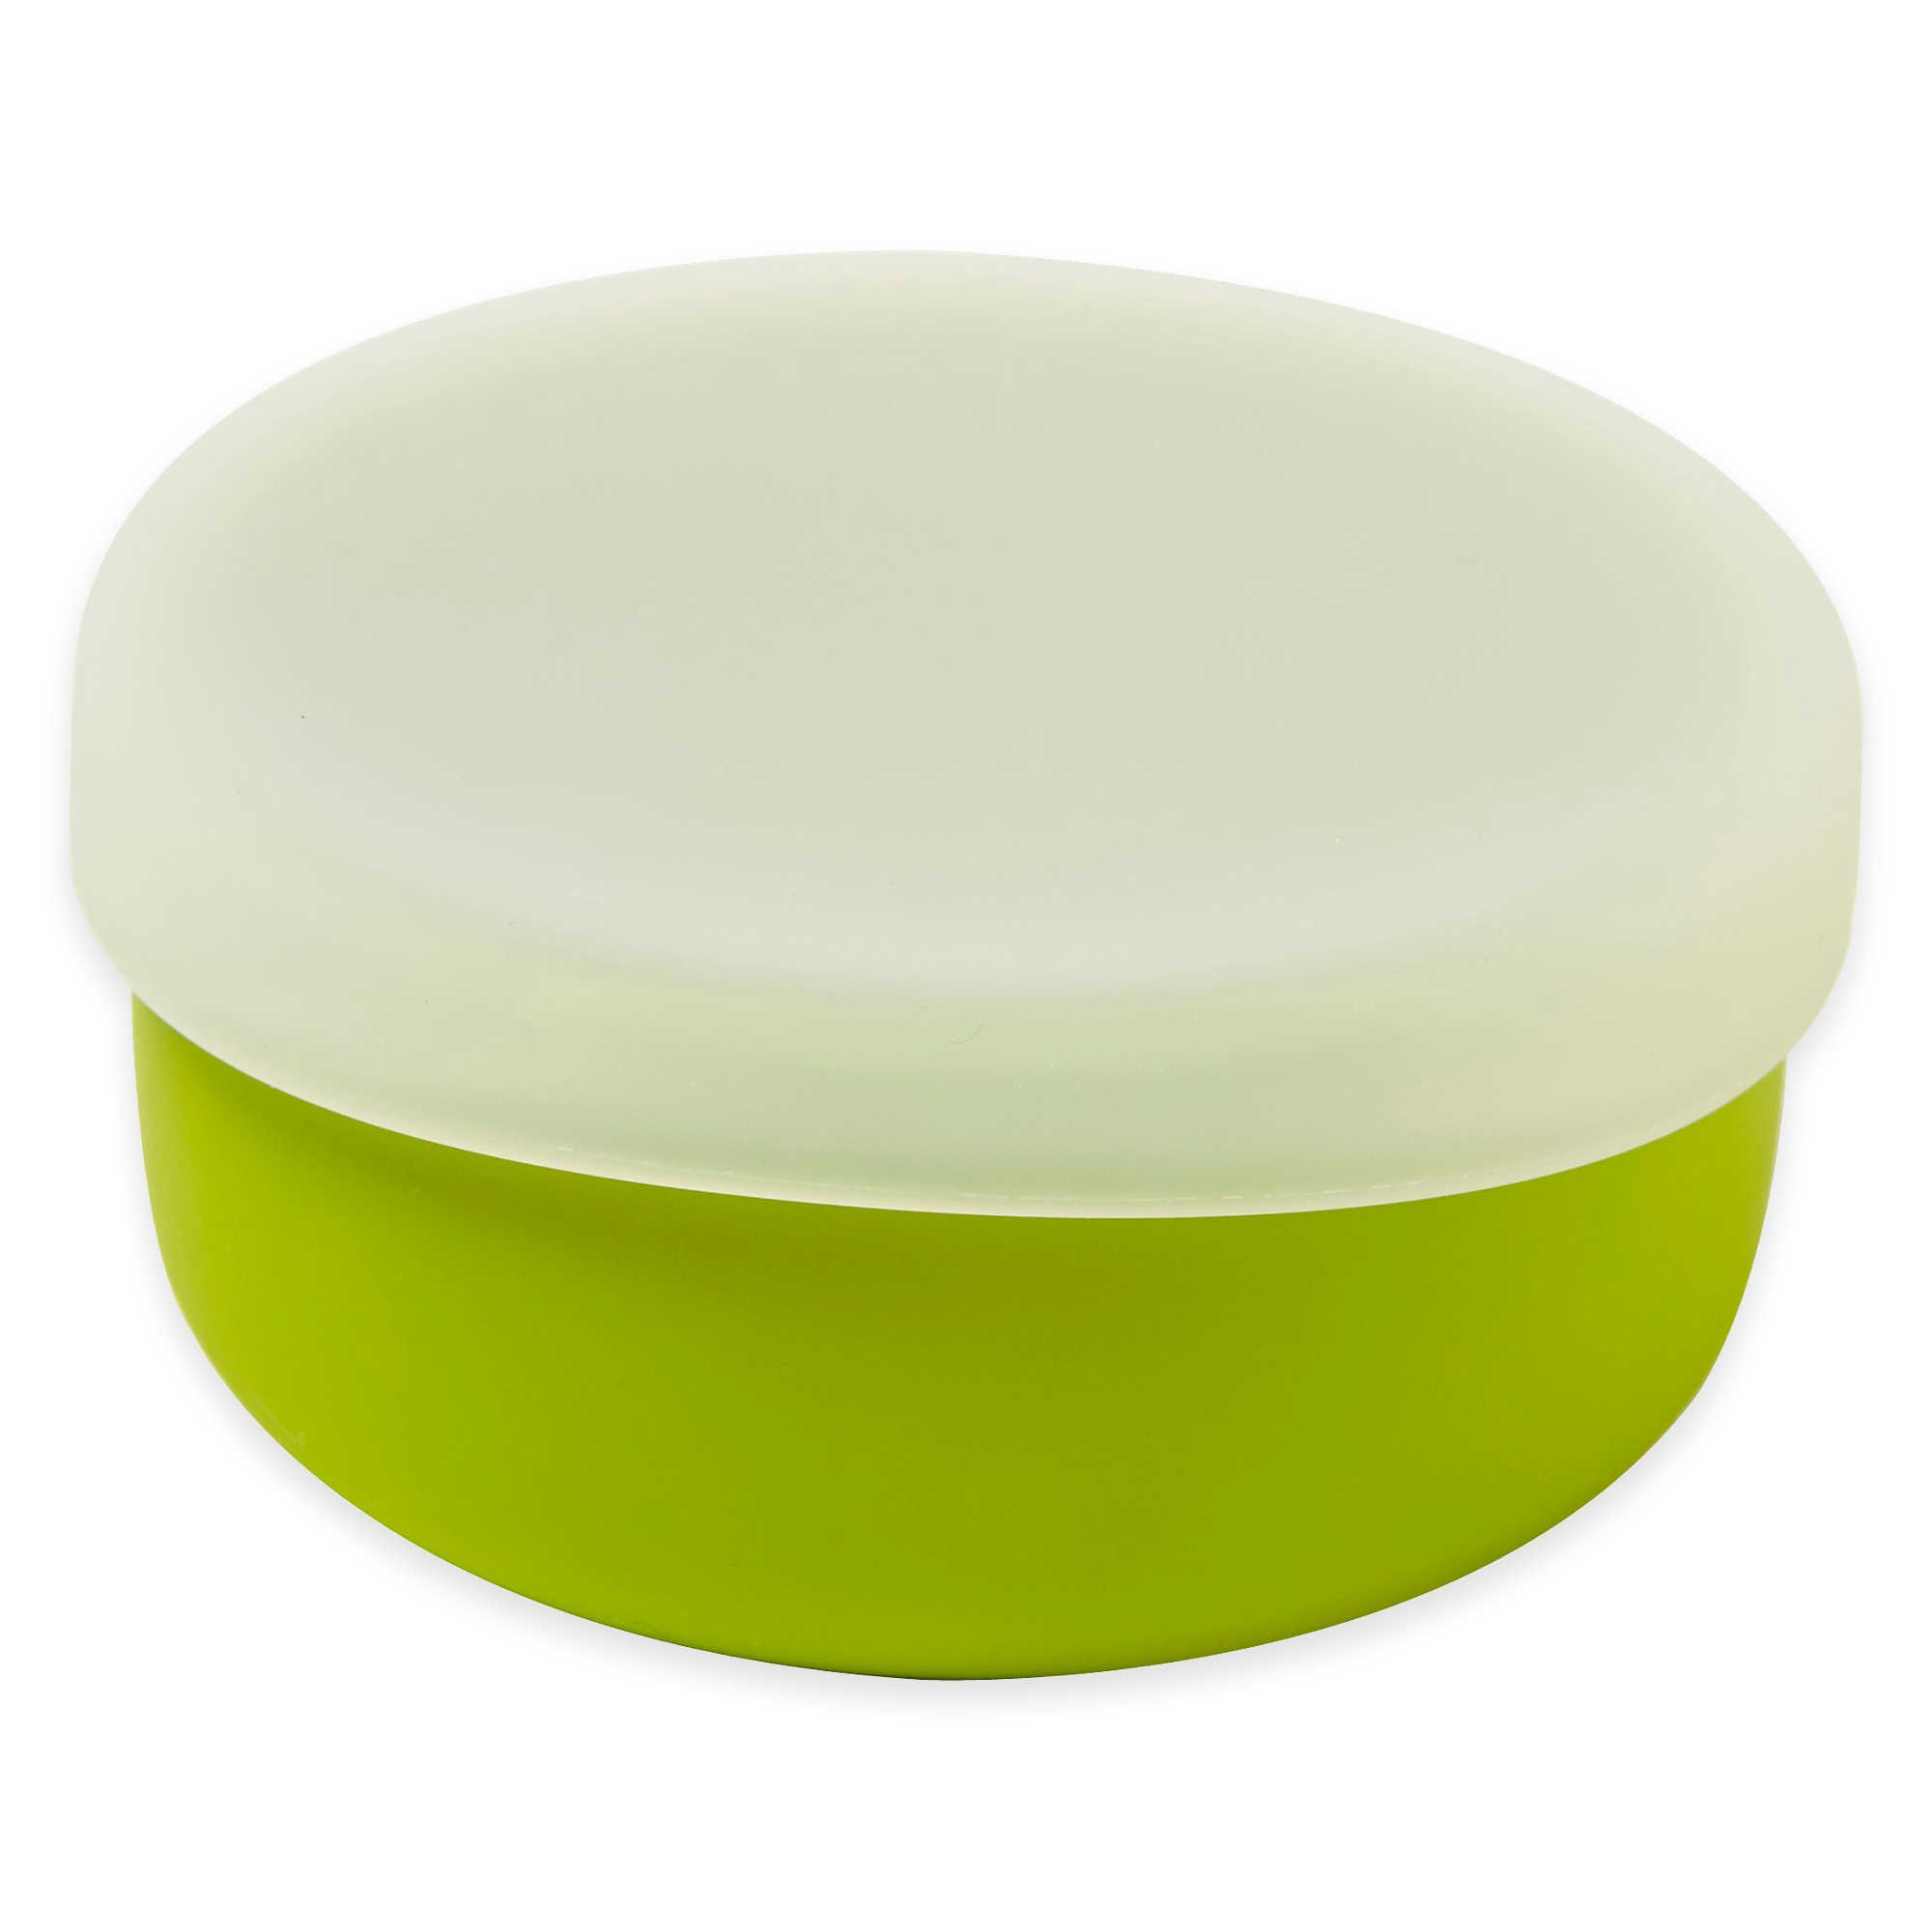 Modern Twist 4.85 oz. Silicone Bowl with Lid in Green (3 Packs)